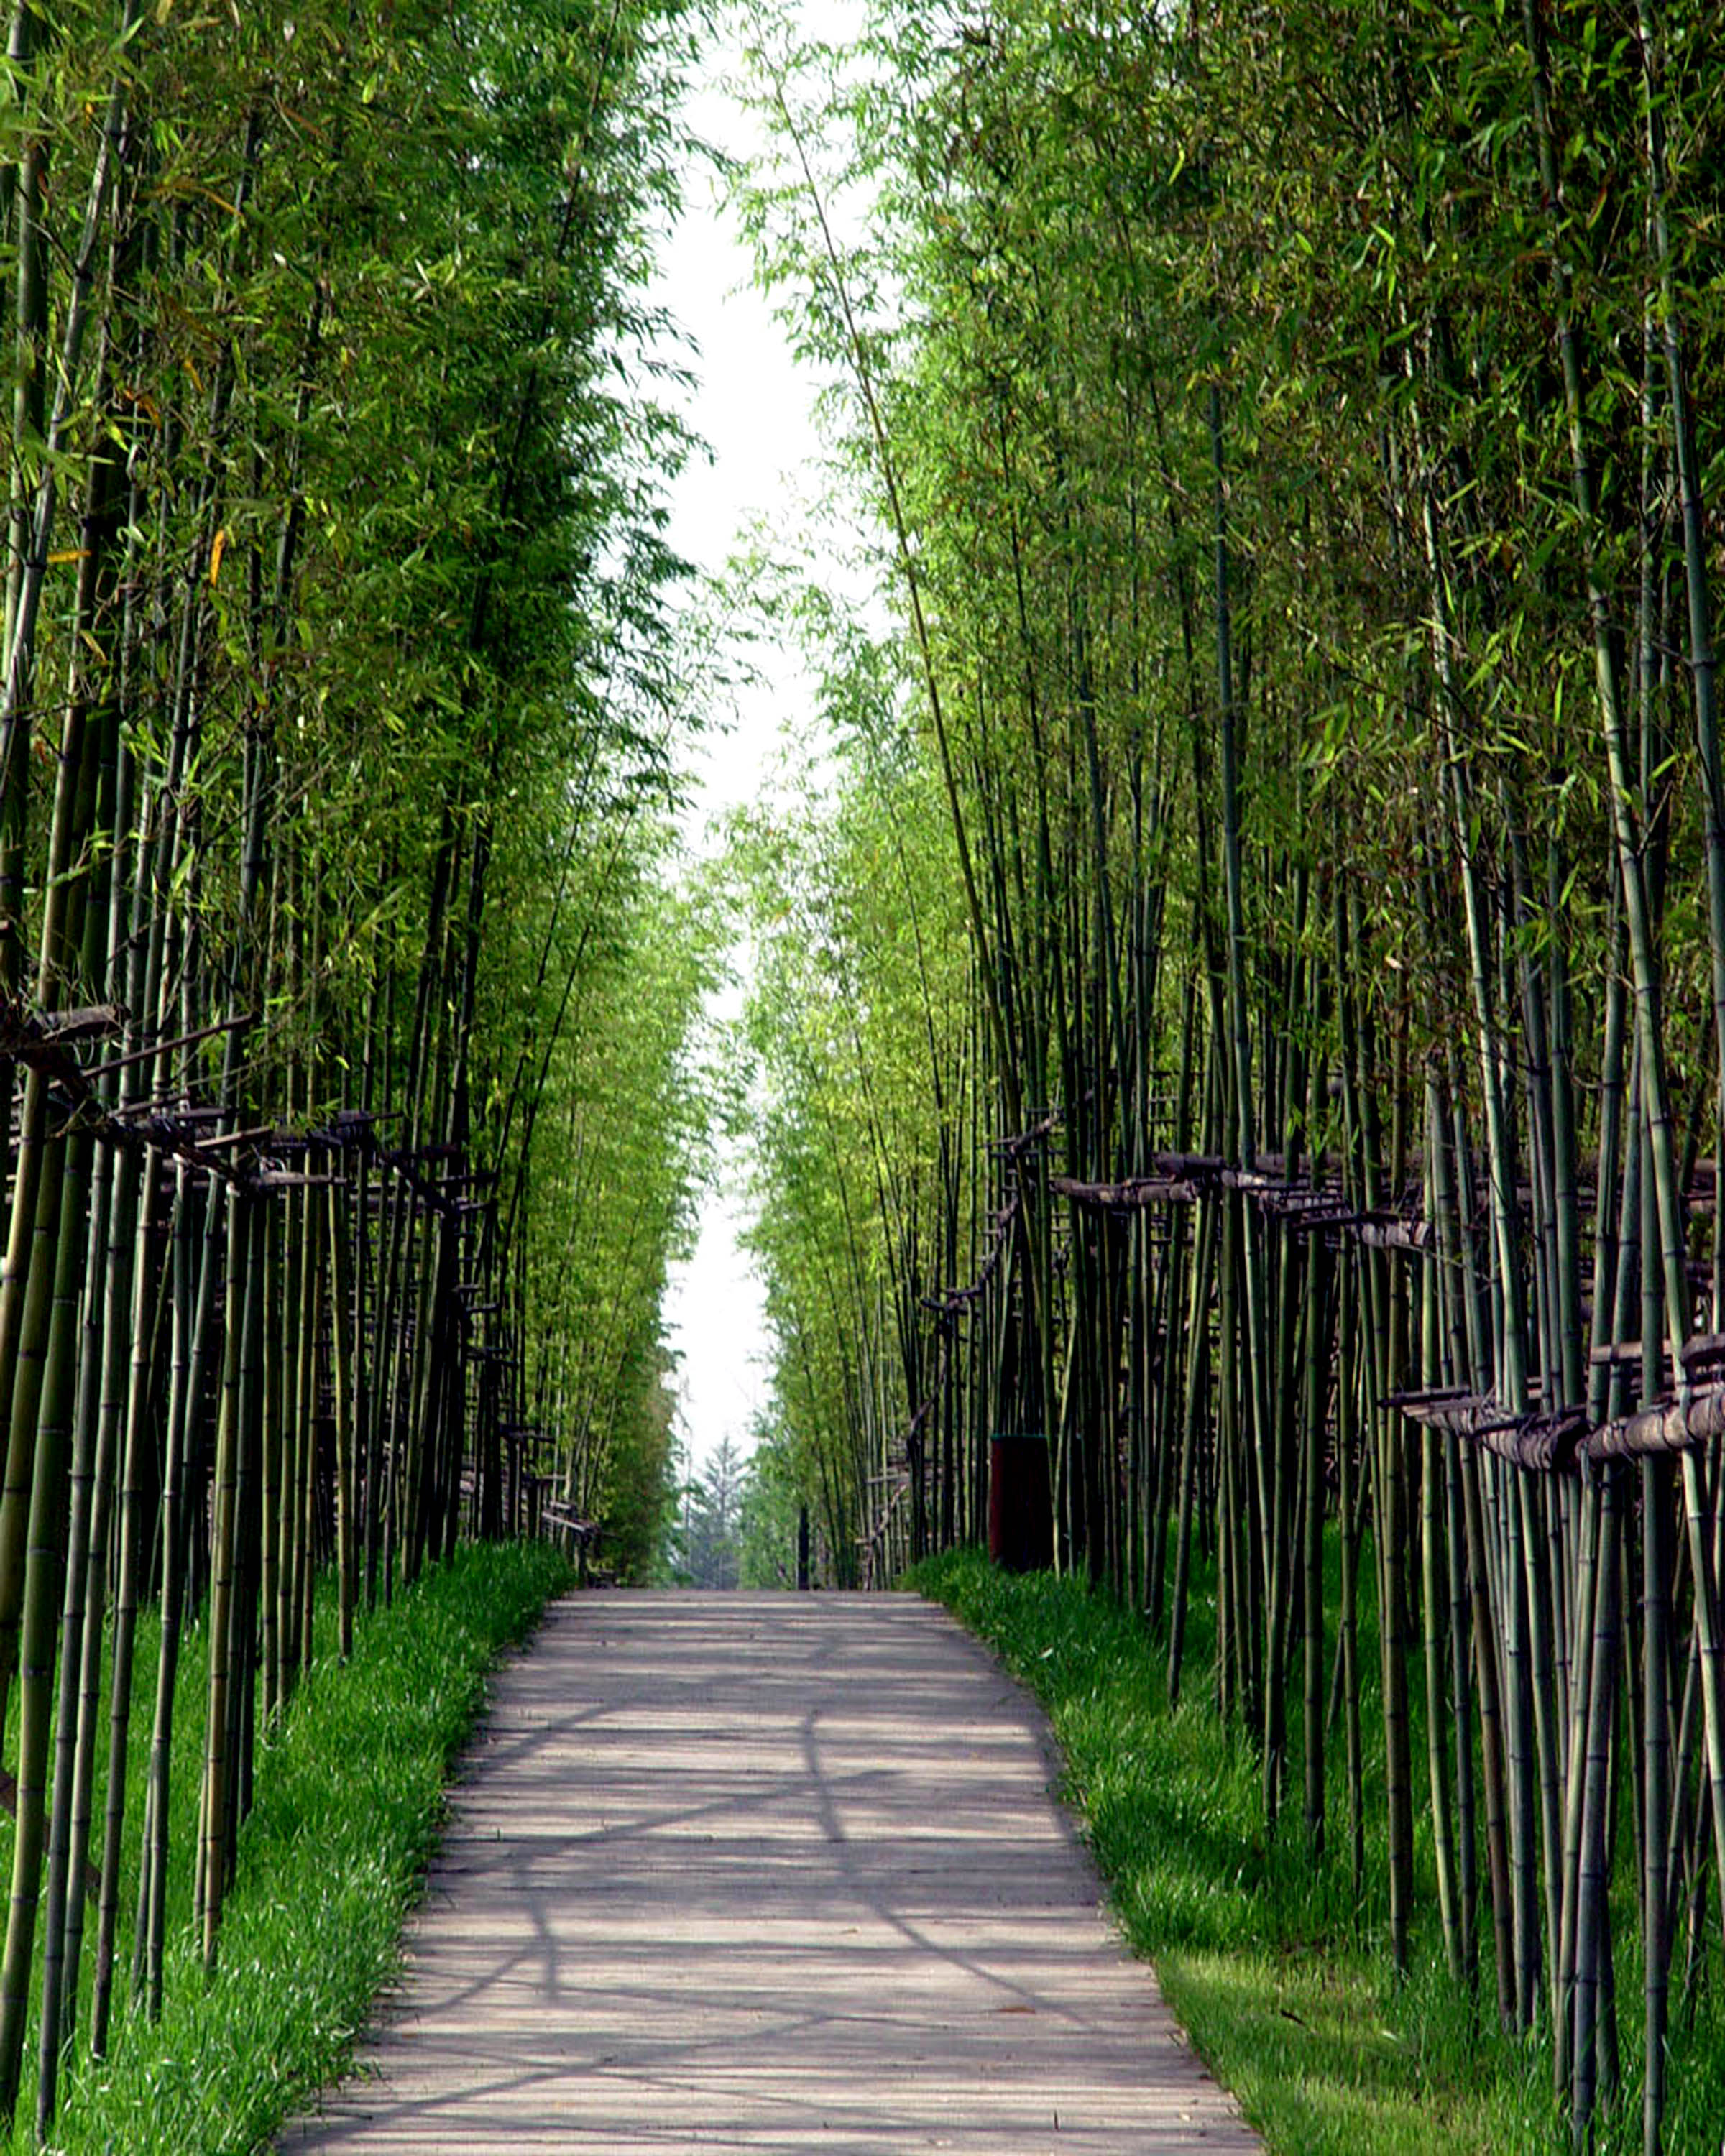 Nj Bamboo Landscaping: 1000+ Ideas About Landscape Materials On Pinterest